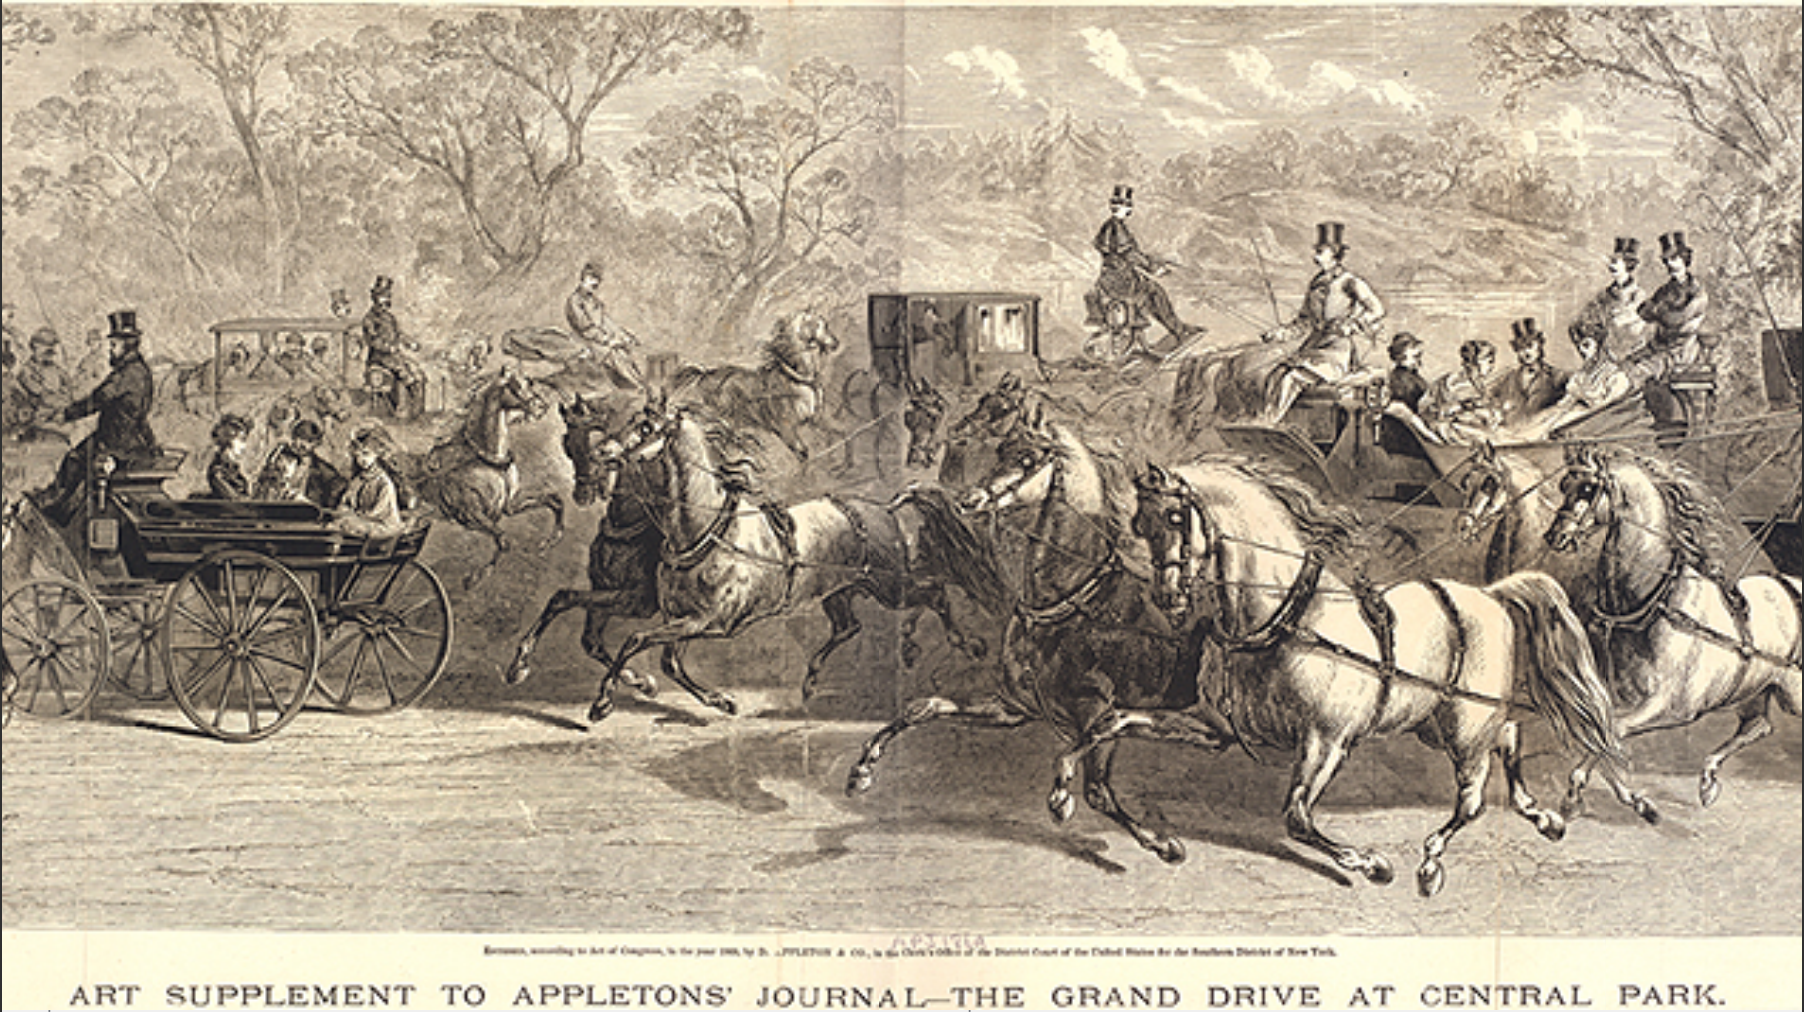 1869-the-grand-drive-at-central-park-1869-nypl